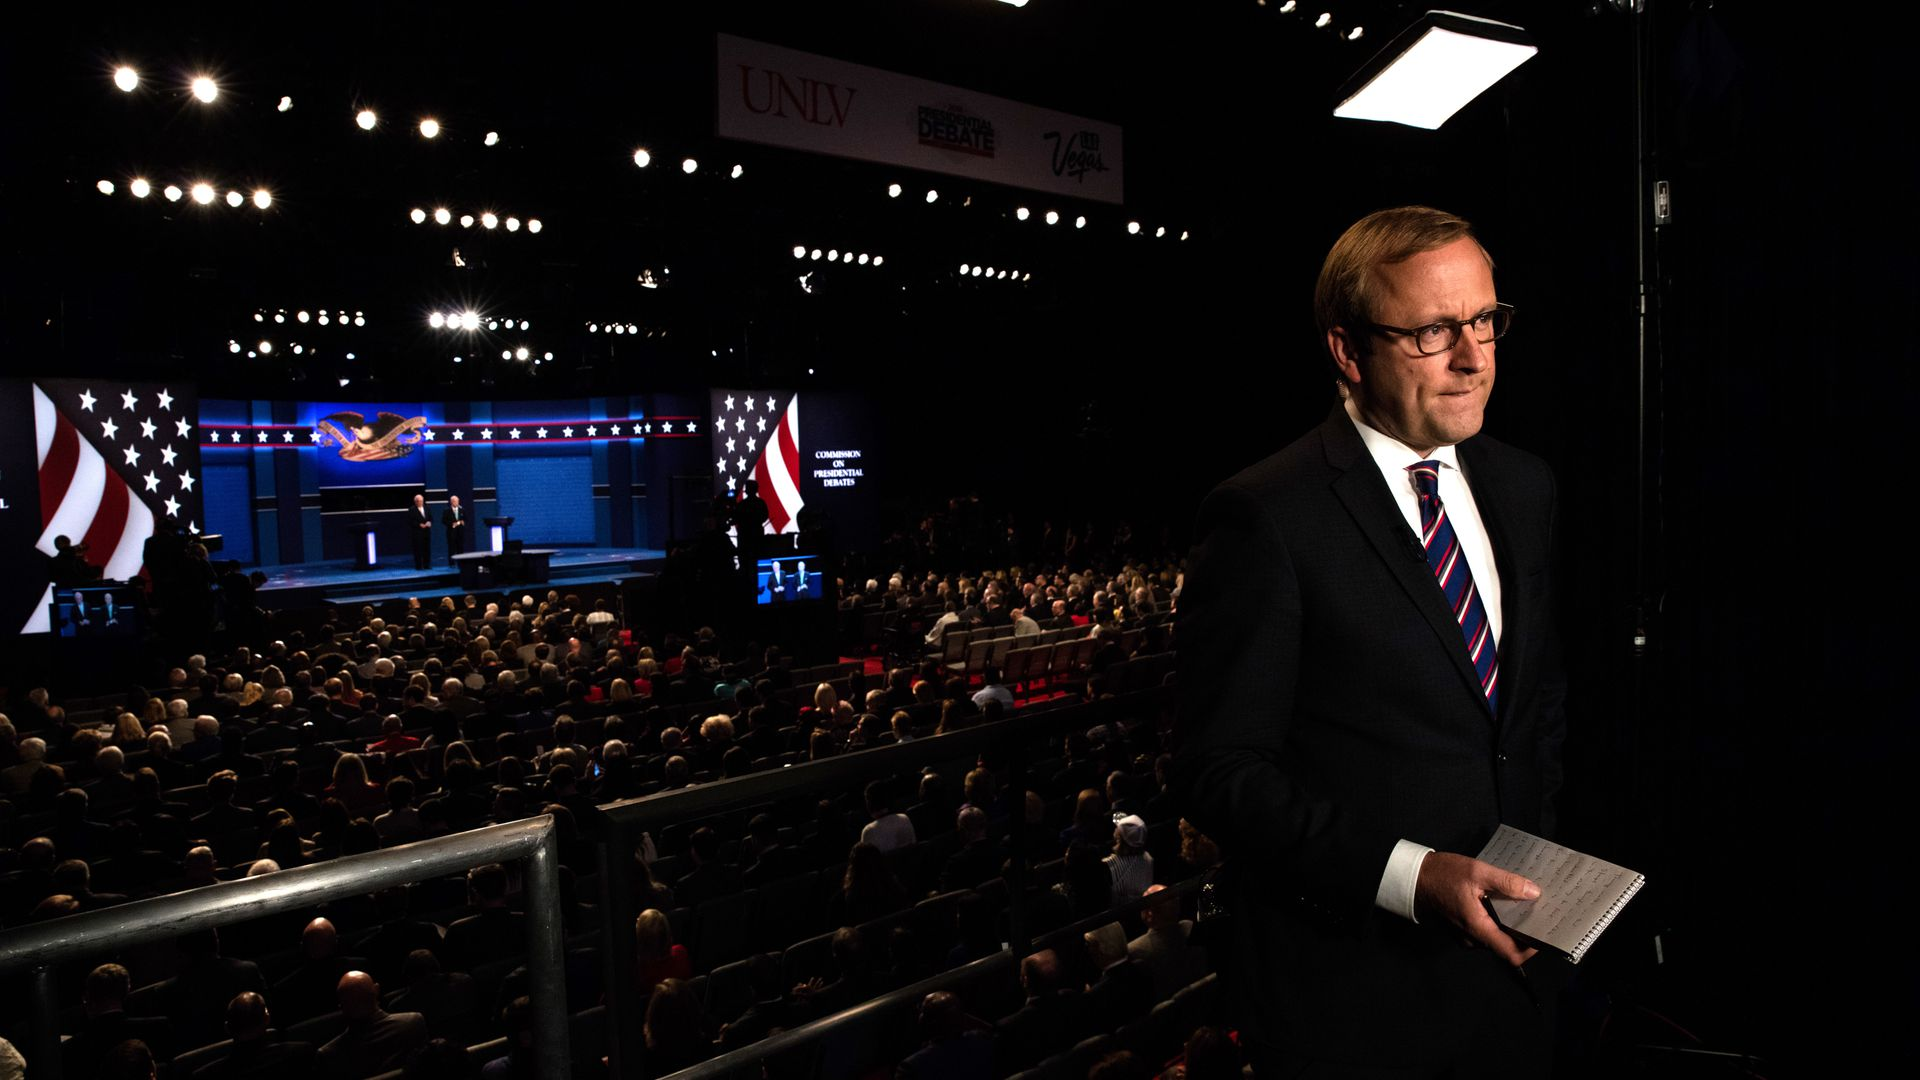 In this image, Jonathan Karl stands and holds a book with a debate stage and crowd behind him.